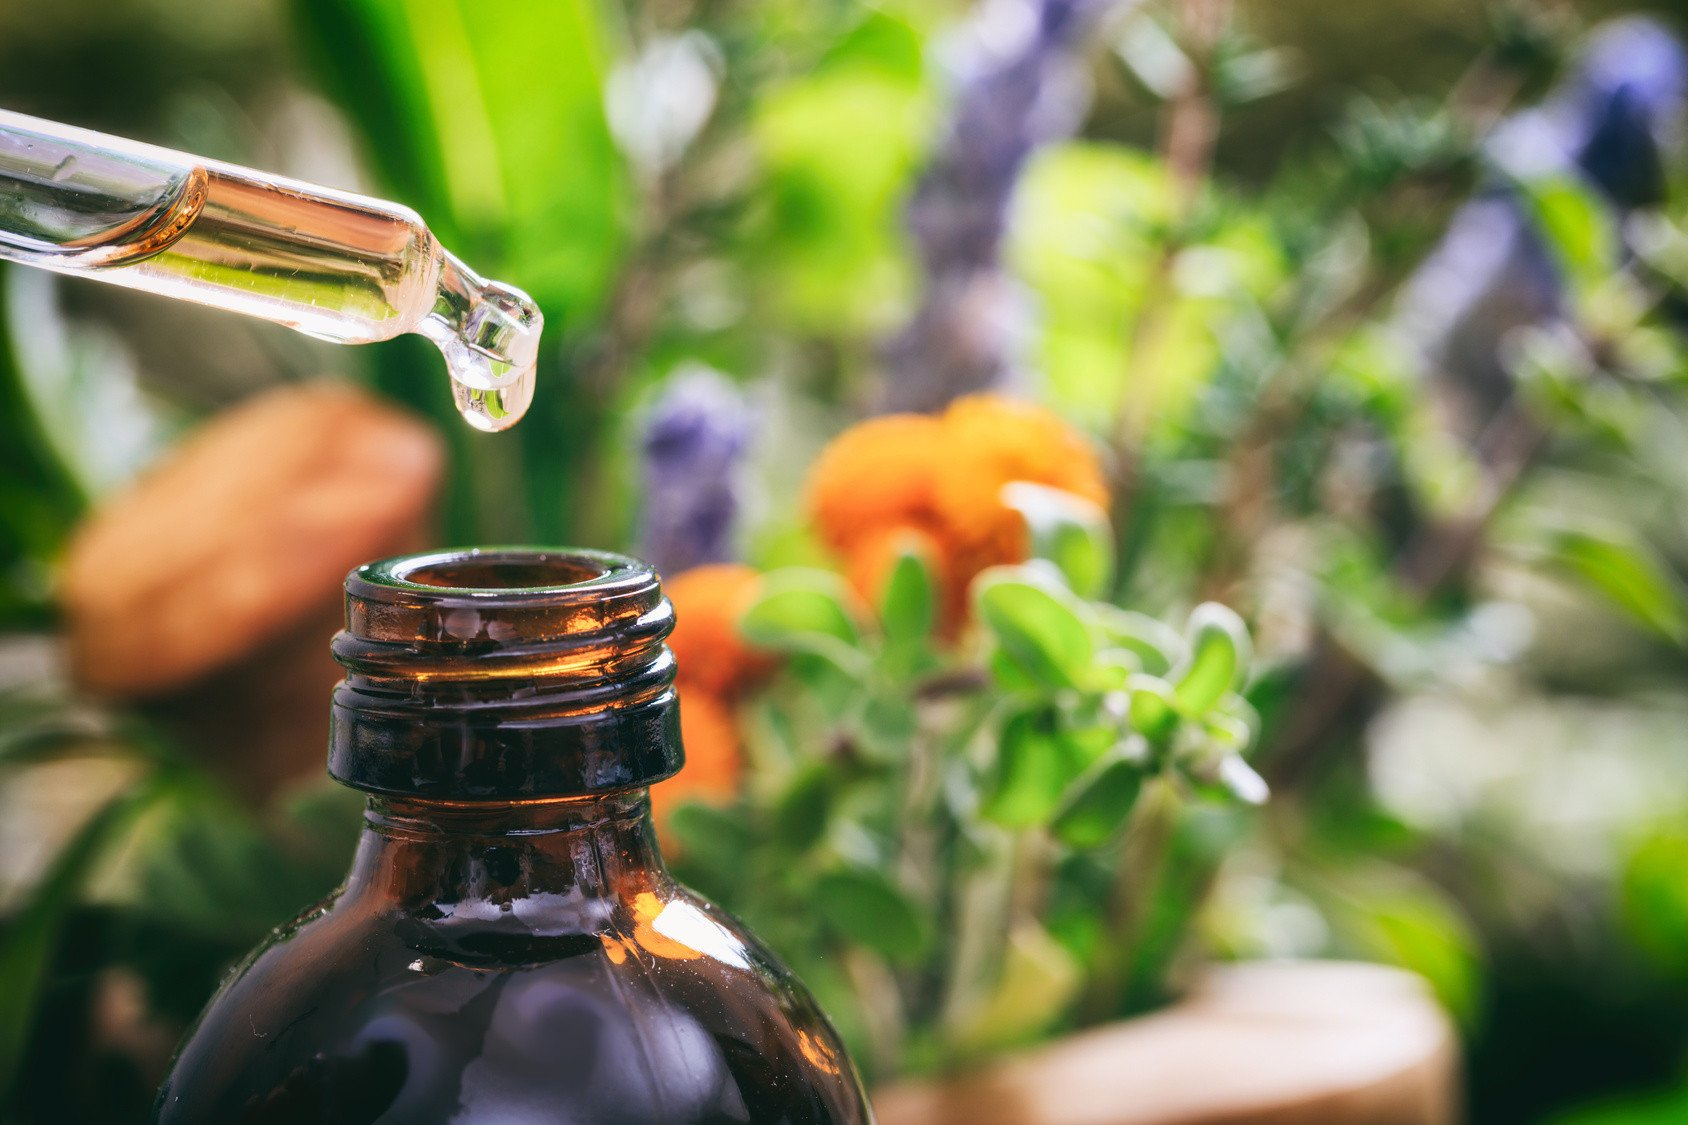 How To Buy High Quality Essential Oils